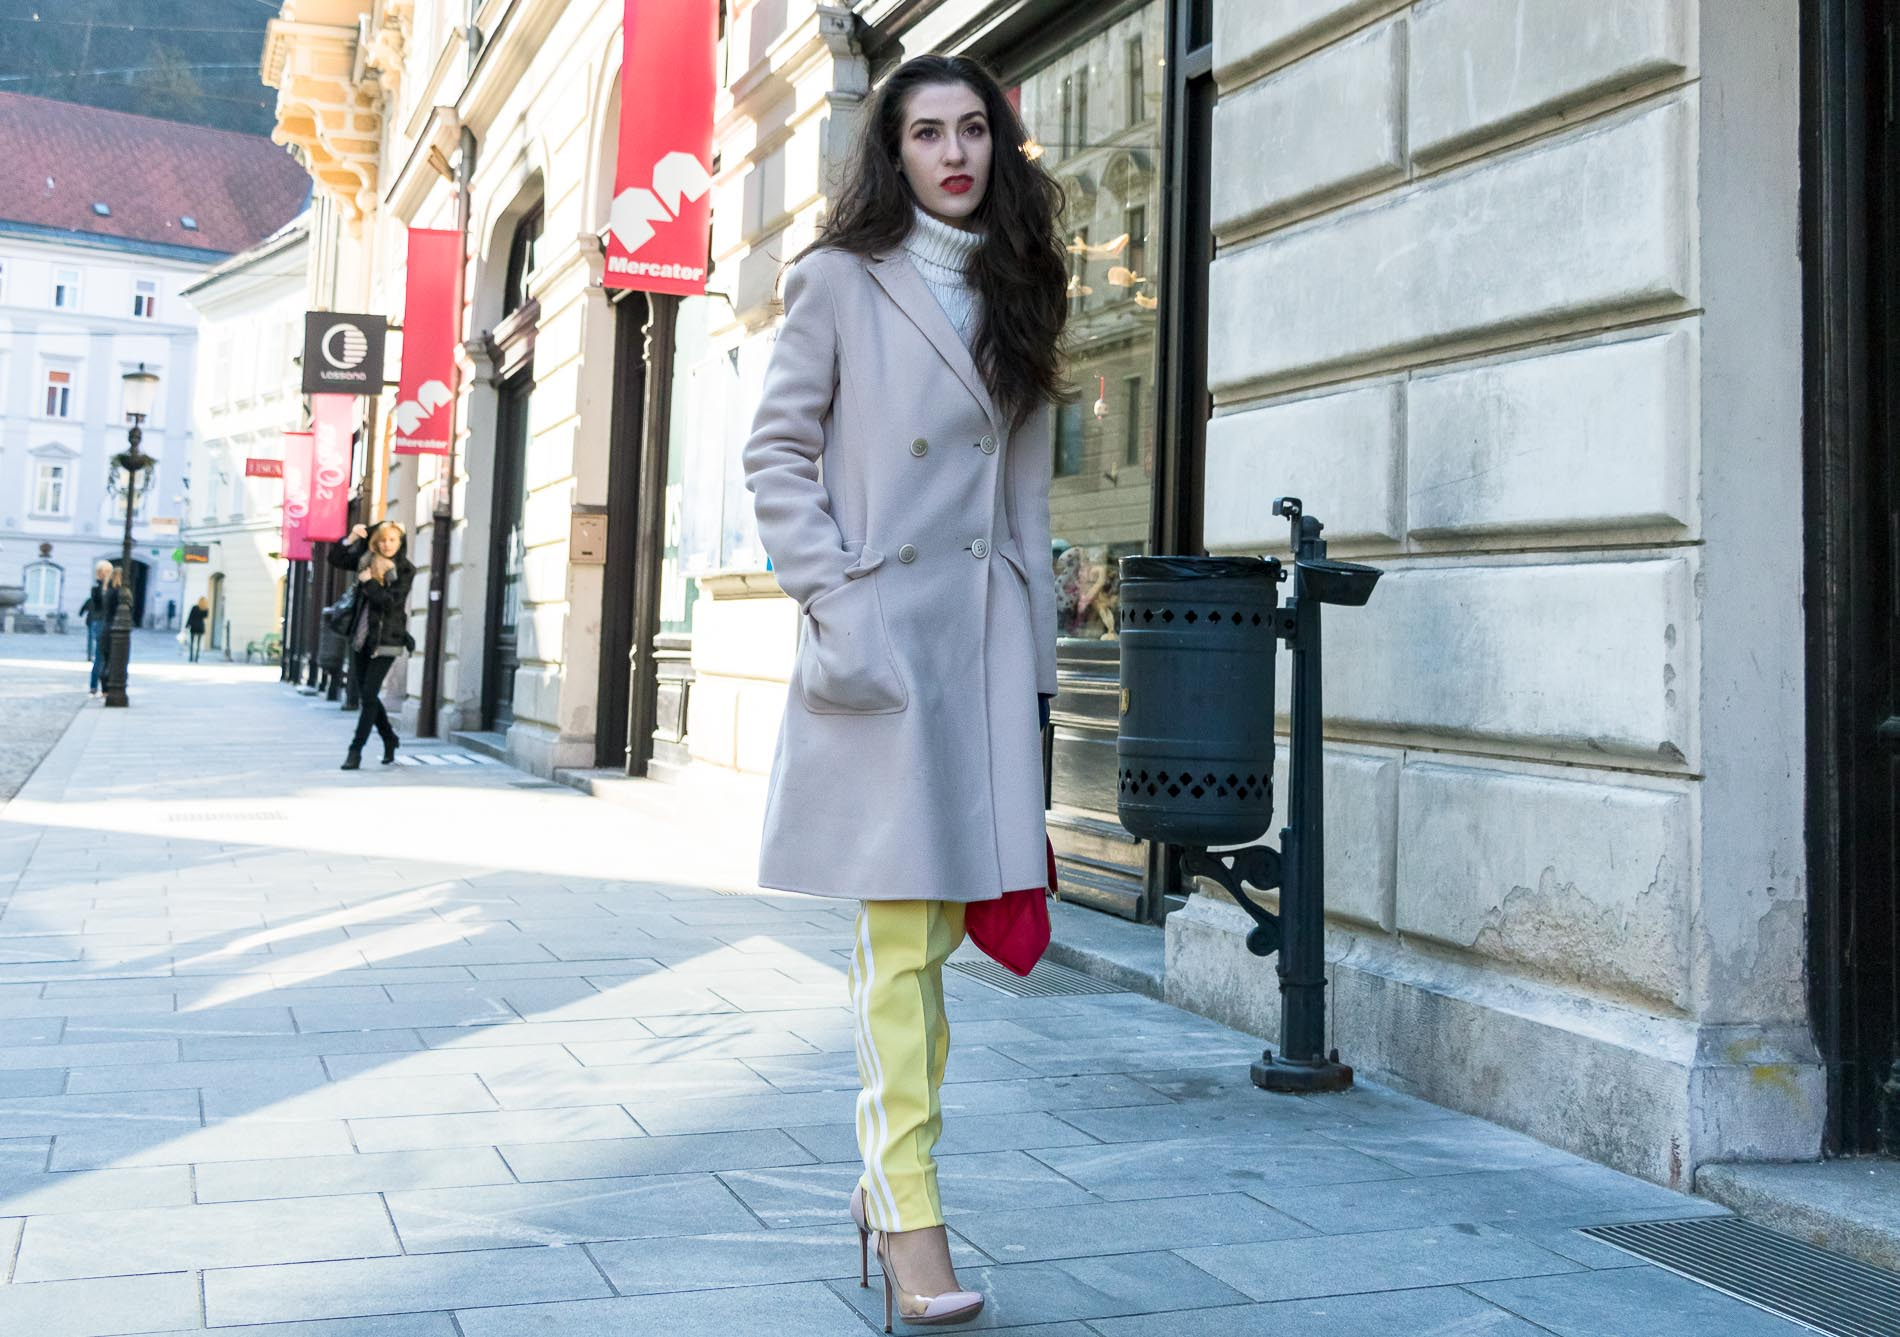 Fashion Blogger Veronika Lipar of Brunette from Wall Street wearing yellow track pants with white stripes from Adidas, white turtleneck knit sweater, off-white pastel double breasted coat from Weekend Max Mara, blush powder transparent plexi shoes from Gianvito Rossi, pink top handle bag from See by Chloe while walking down the street in Ljubljana